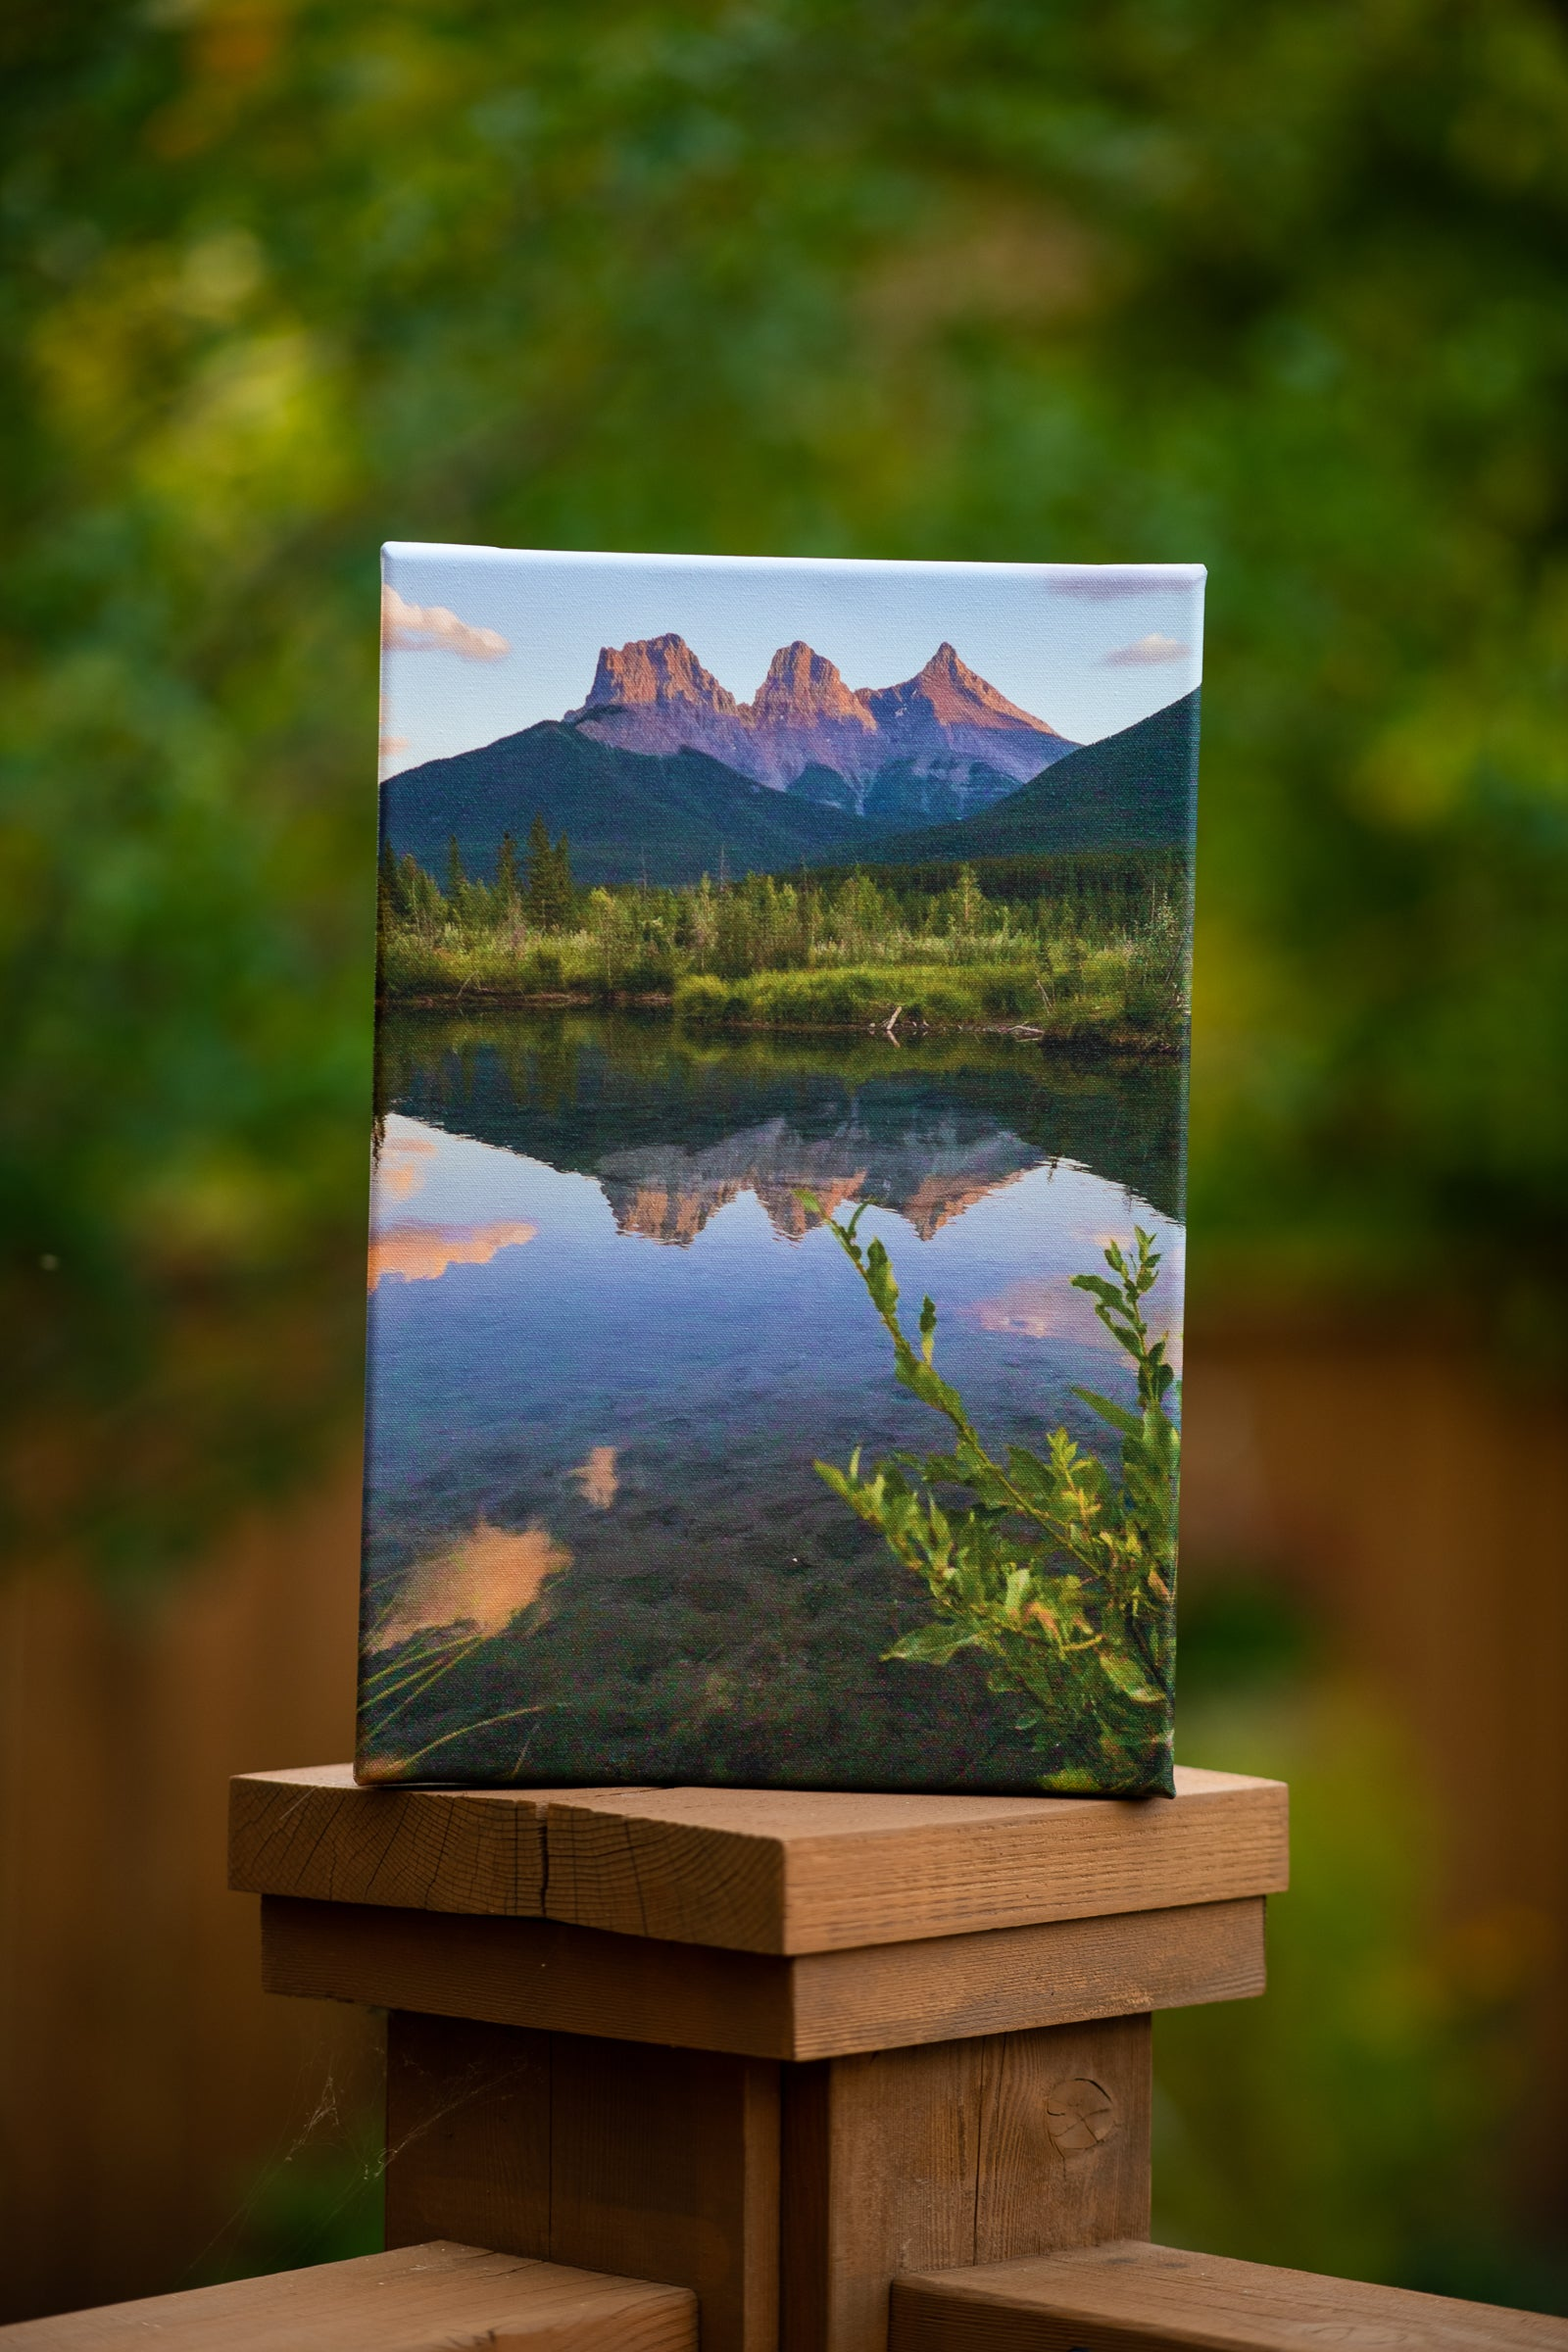 Canadian Landscape Photo by Erik McRitchie Printed on Canvas by Posterjack